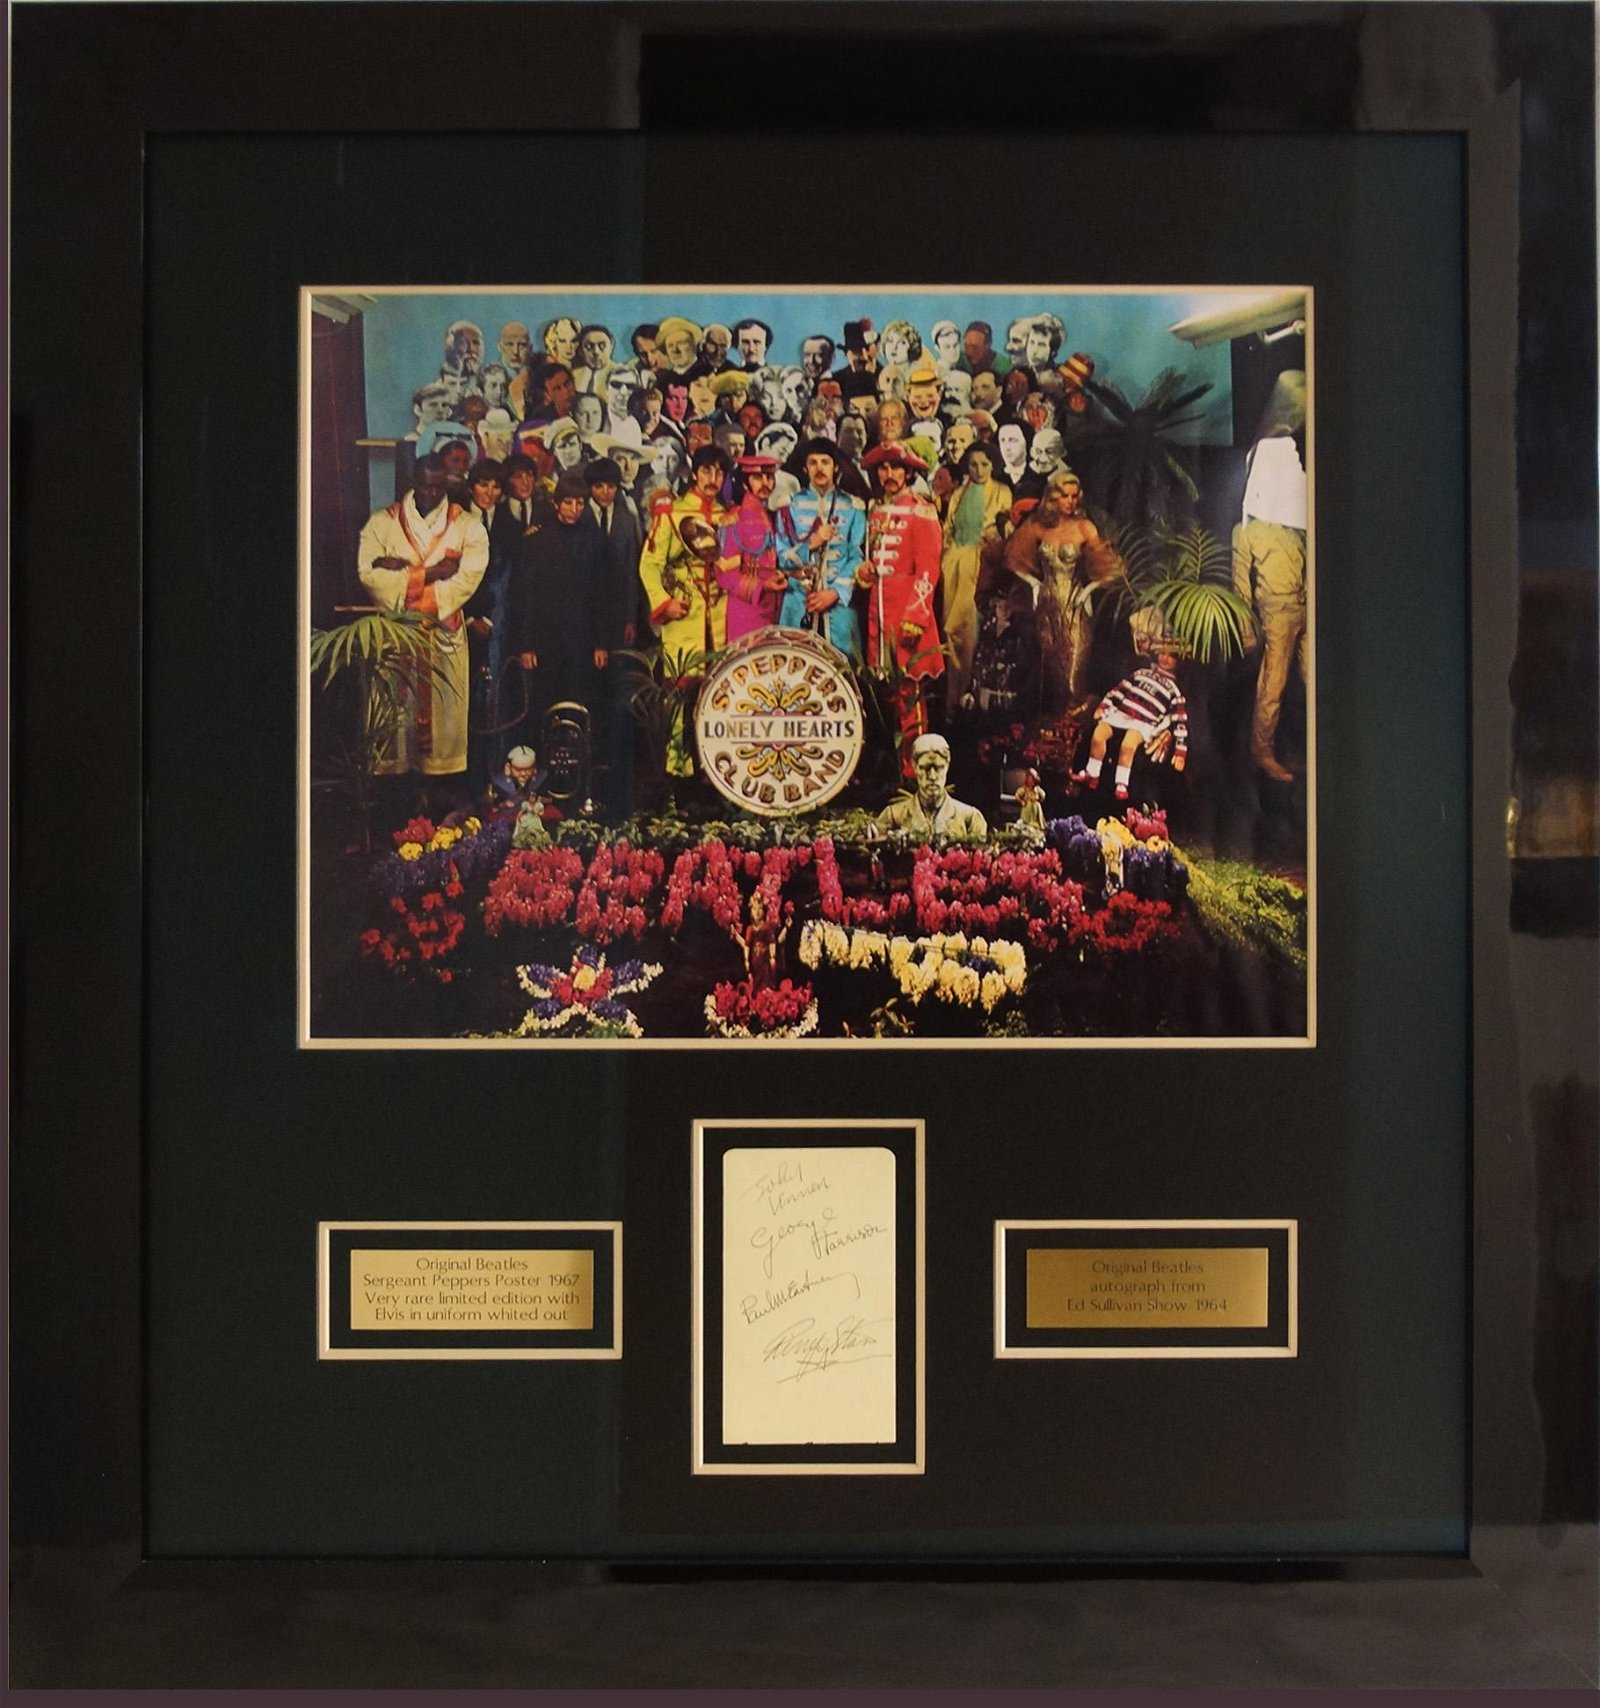 Rare 1967 Beatles Poster with Autographs